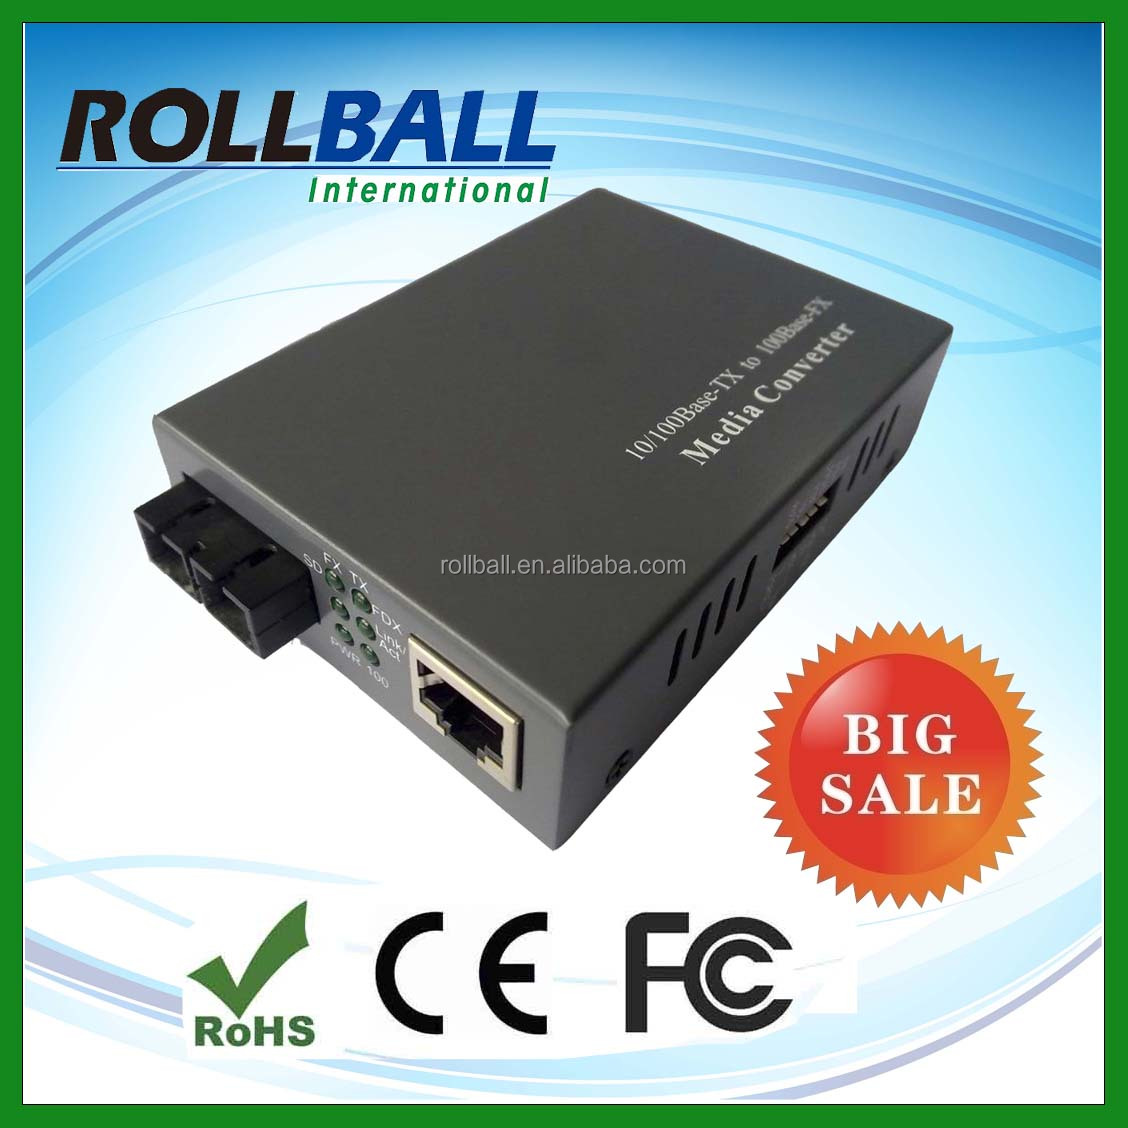 Original new High performance 10/100m singlemode single fiber 20km optical media player converters